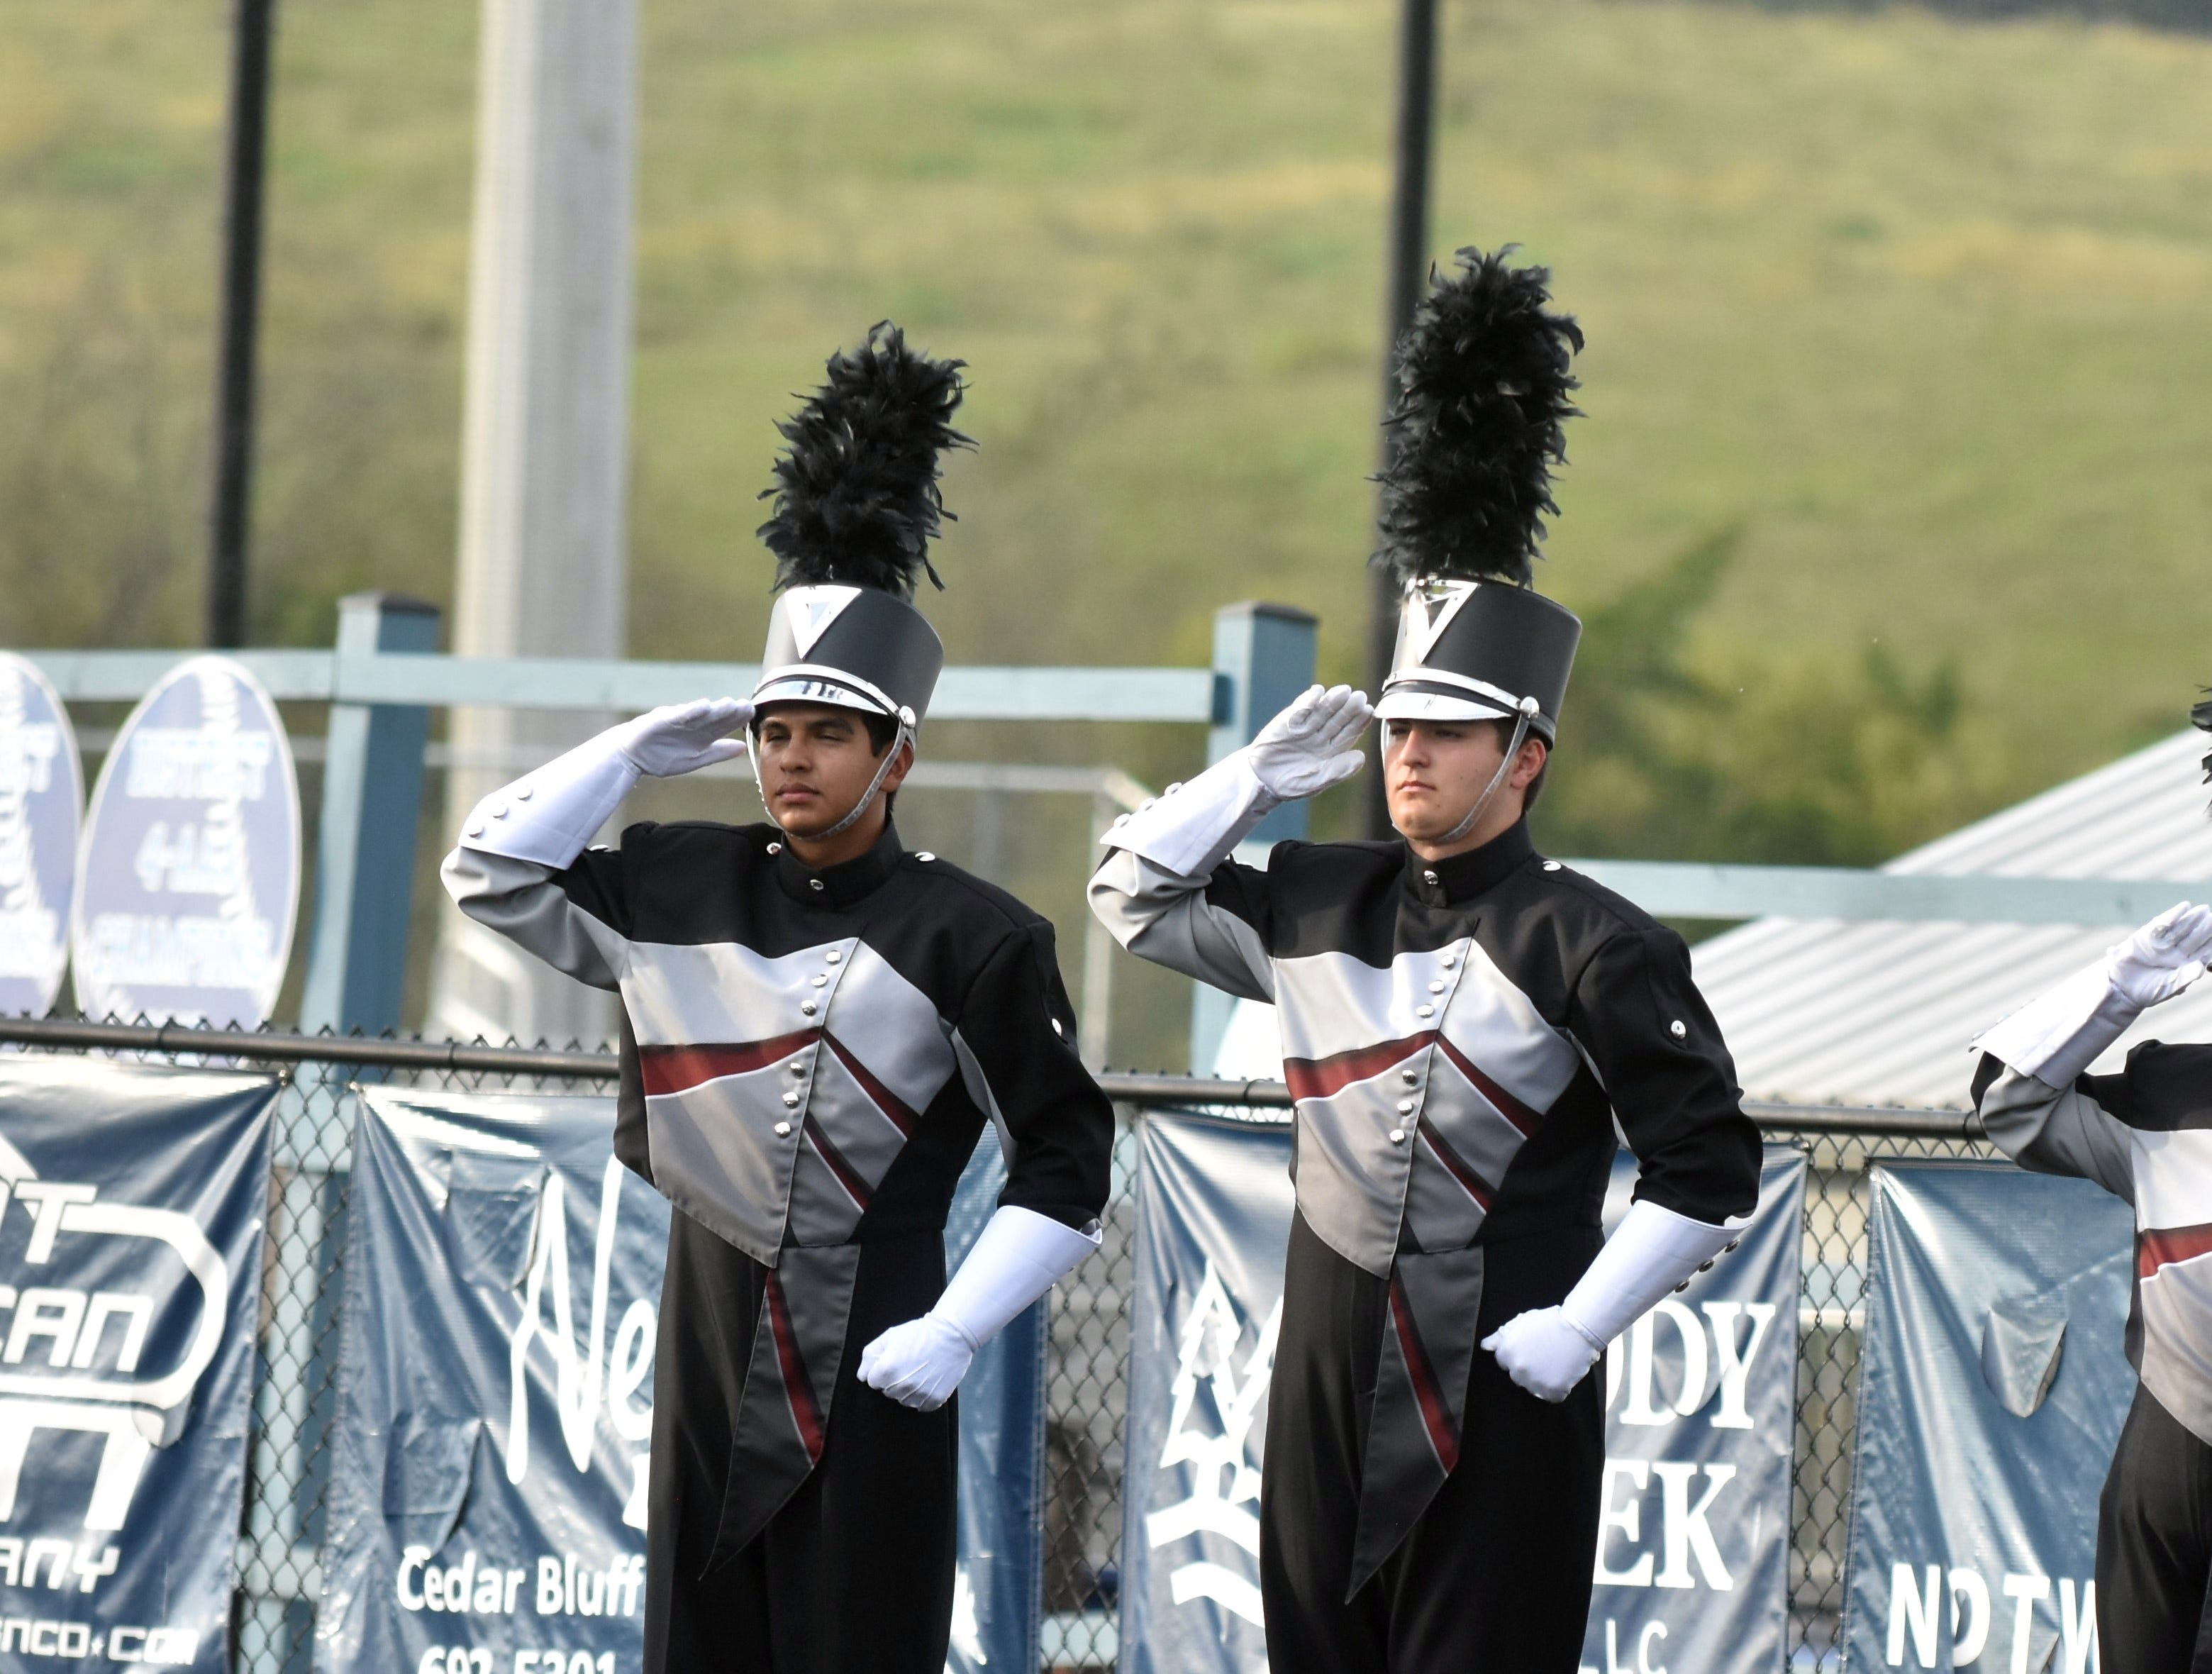 Bearden High band members salute the flag prior to the opening of the Knox County band exhibition on Monday, October 1.